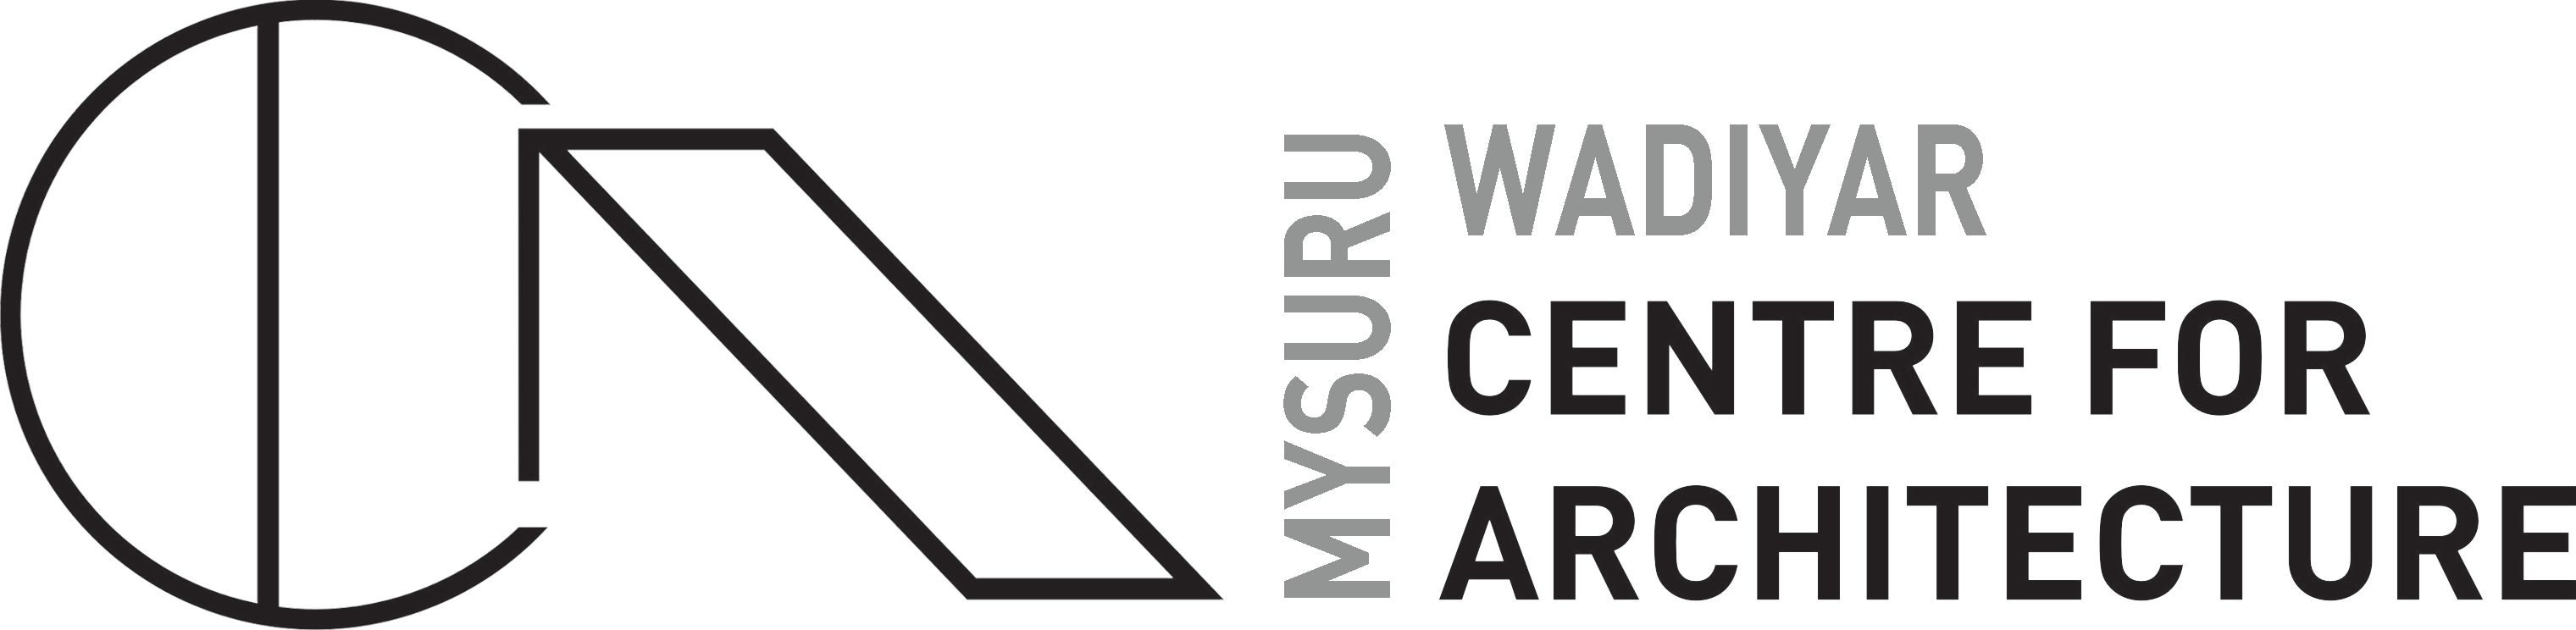 Wadiyar Centre for Architecture